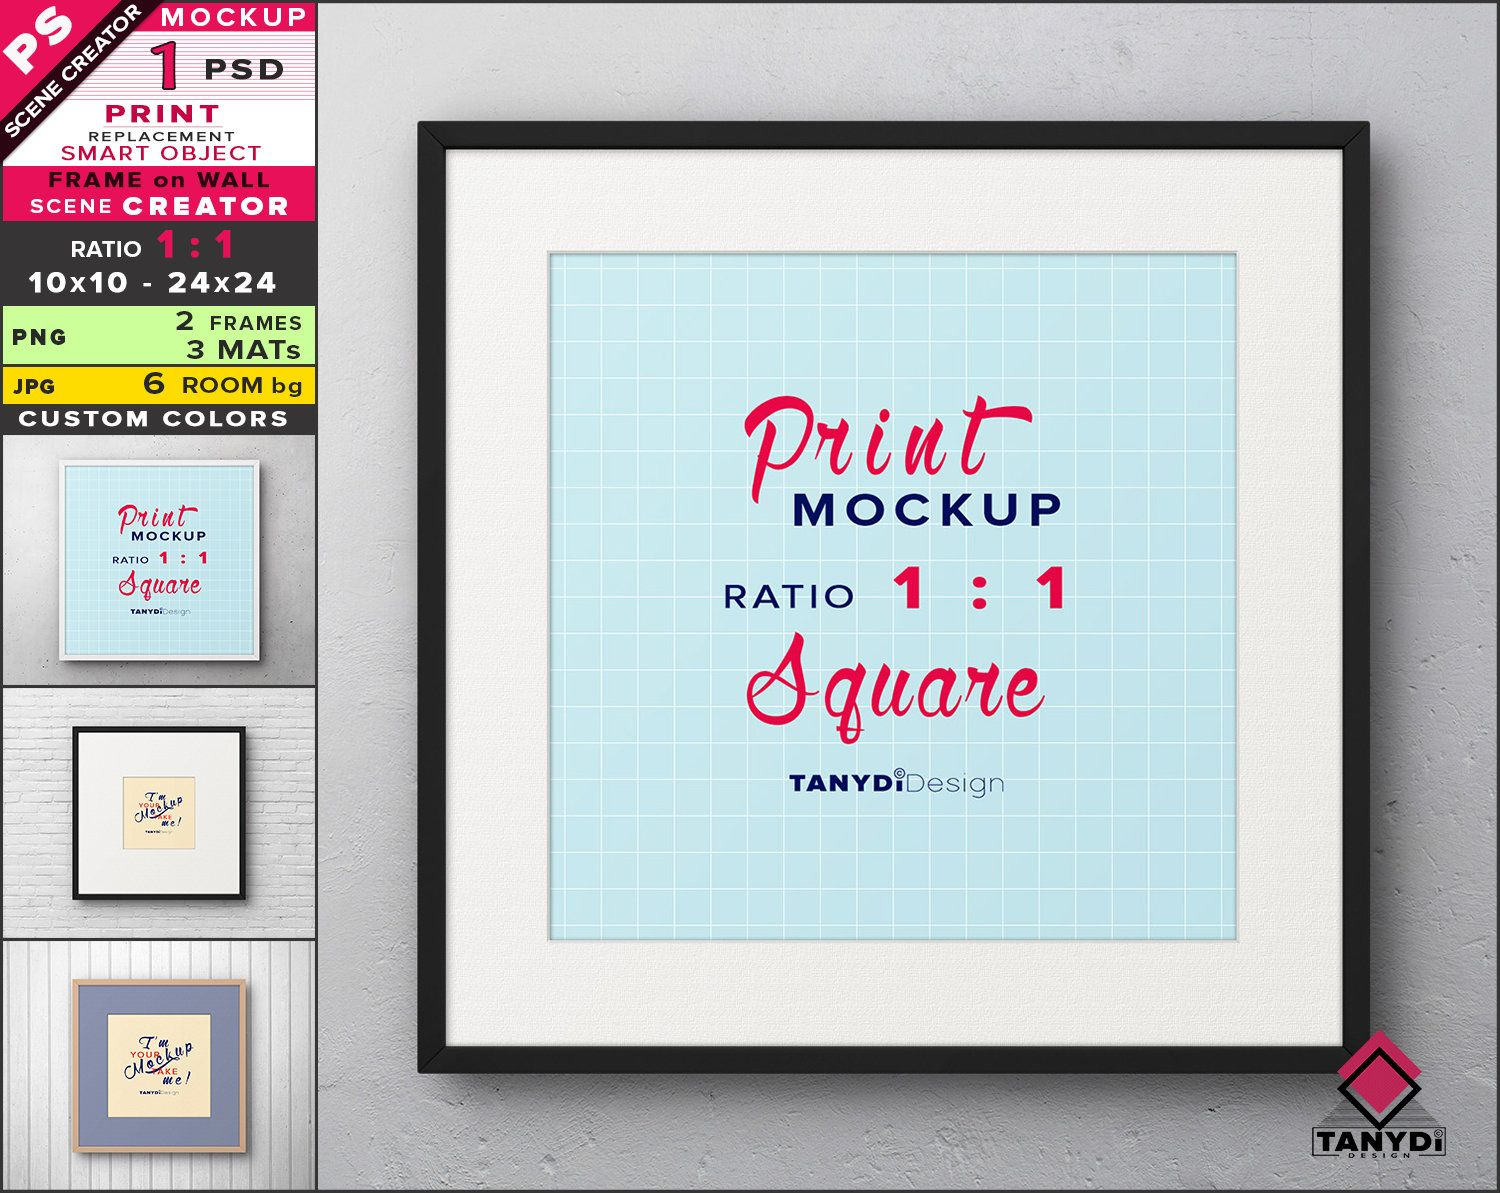 Square Frame On Wall Photoshop Print Mockup Png Metal Frame Etsy Square Frames Frames On Wall Print Mockup